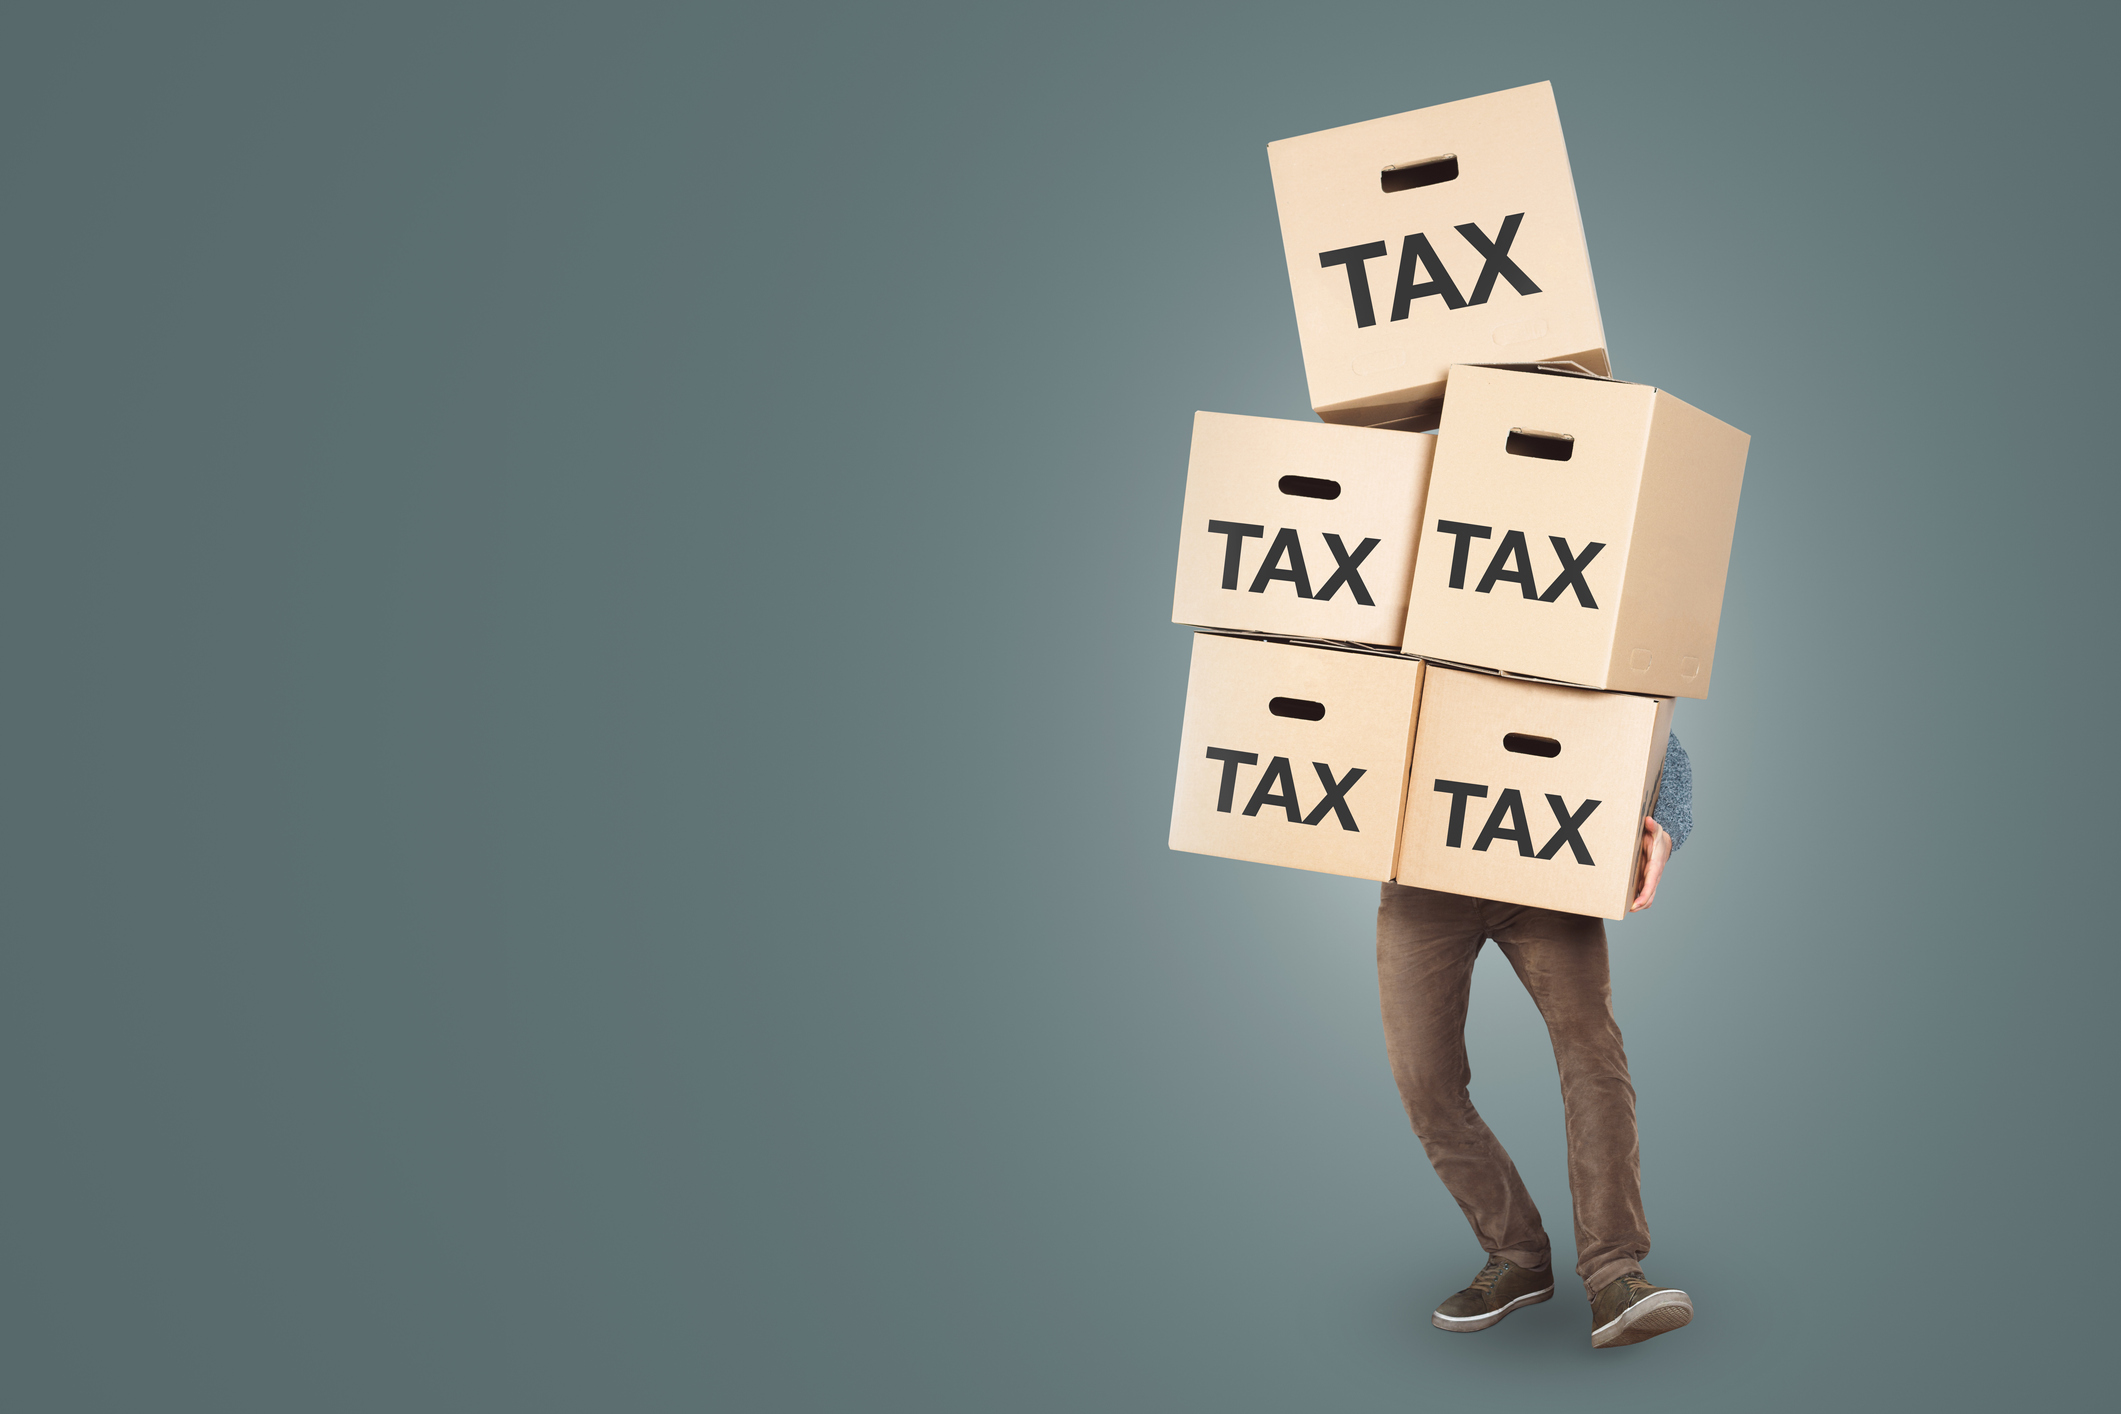 3 Reasons Why Your Tax Burden Could Increase In Retirement